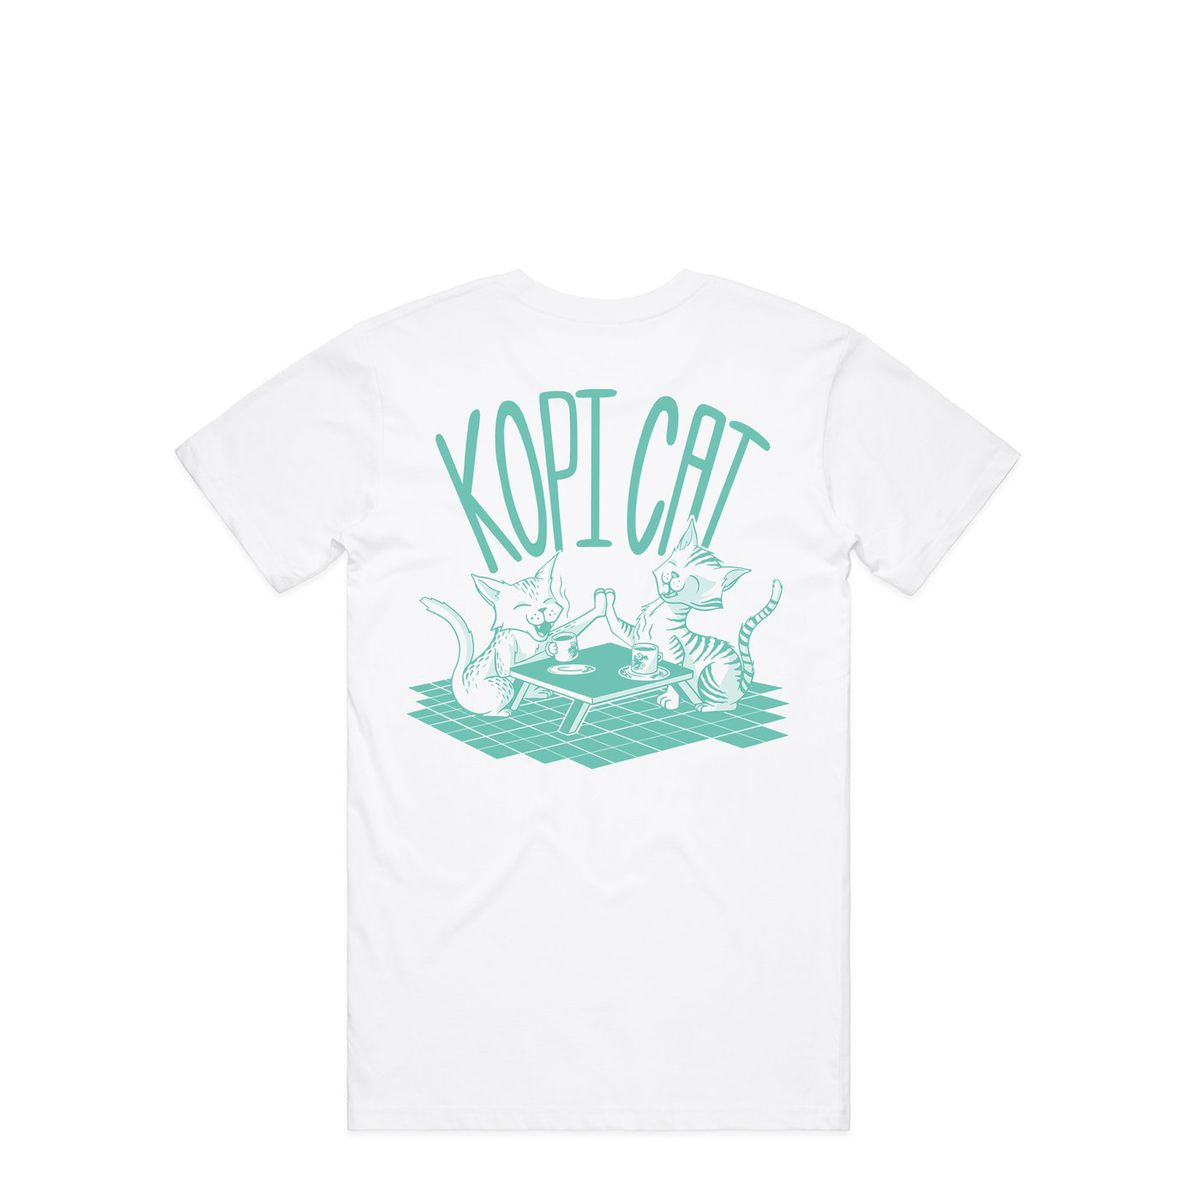 A London restaurant t-shirt with green cats and a Kopi Cat slogan